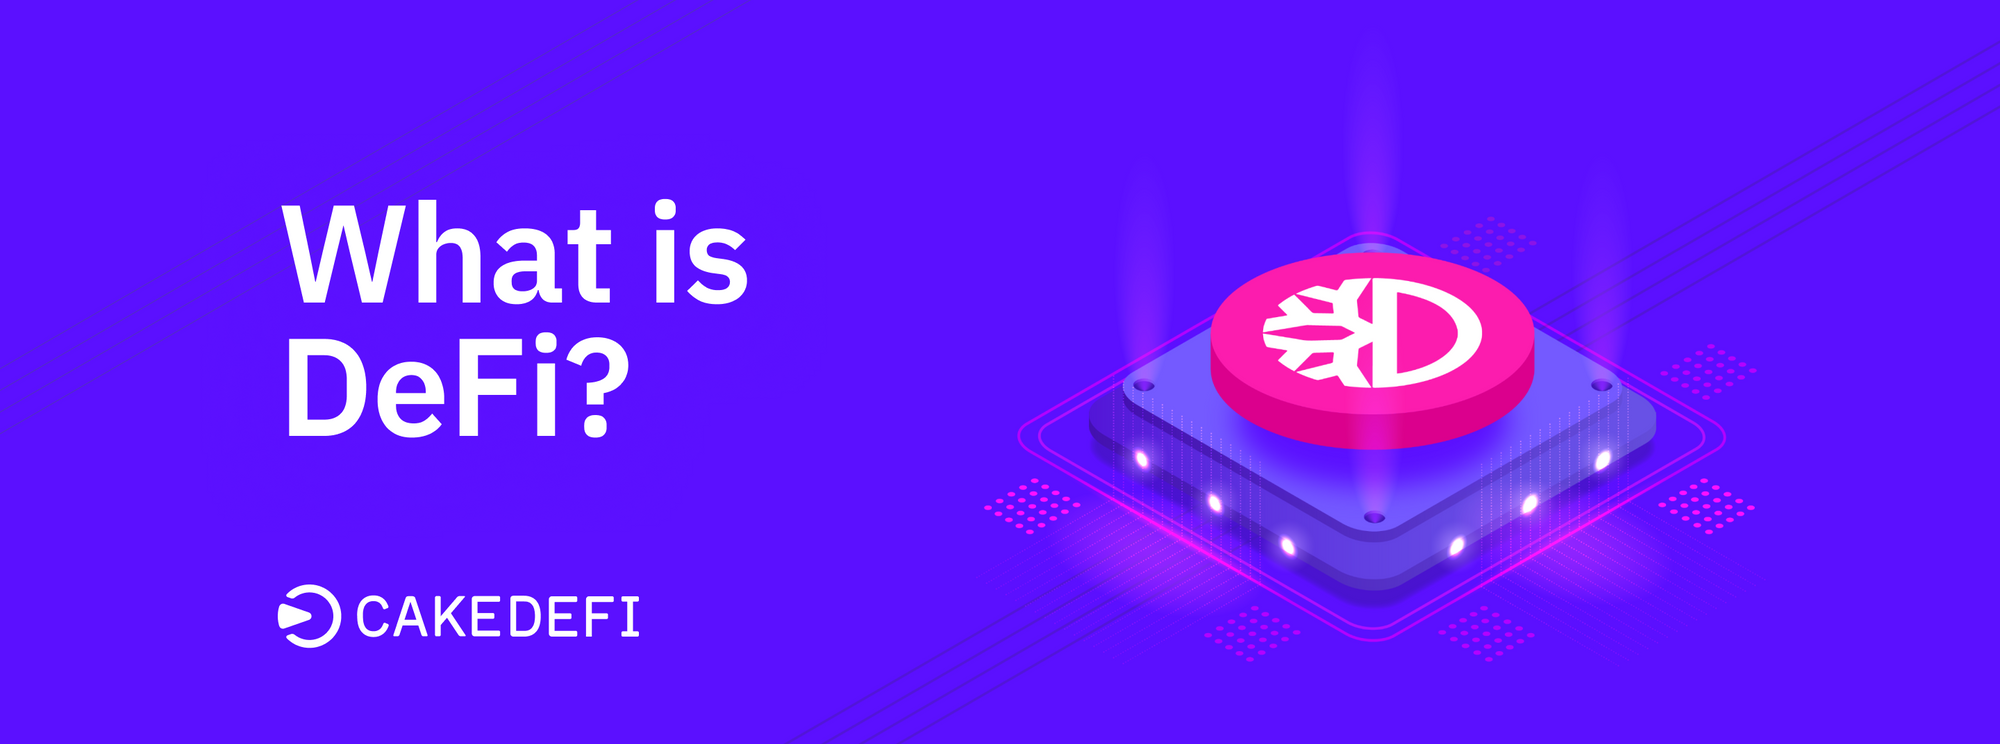 What Is DeFi? Understanding This New Technology